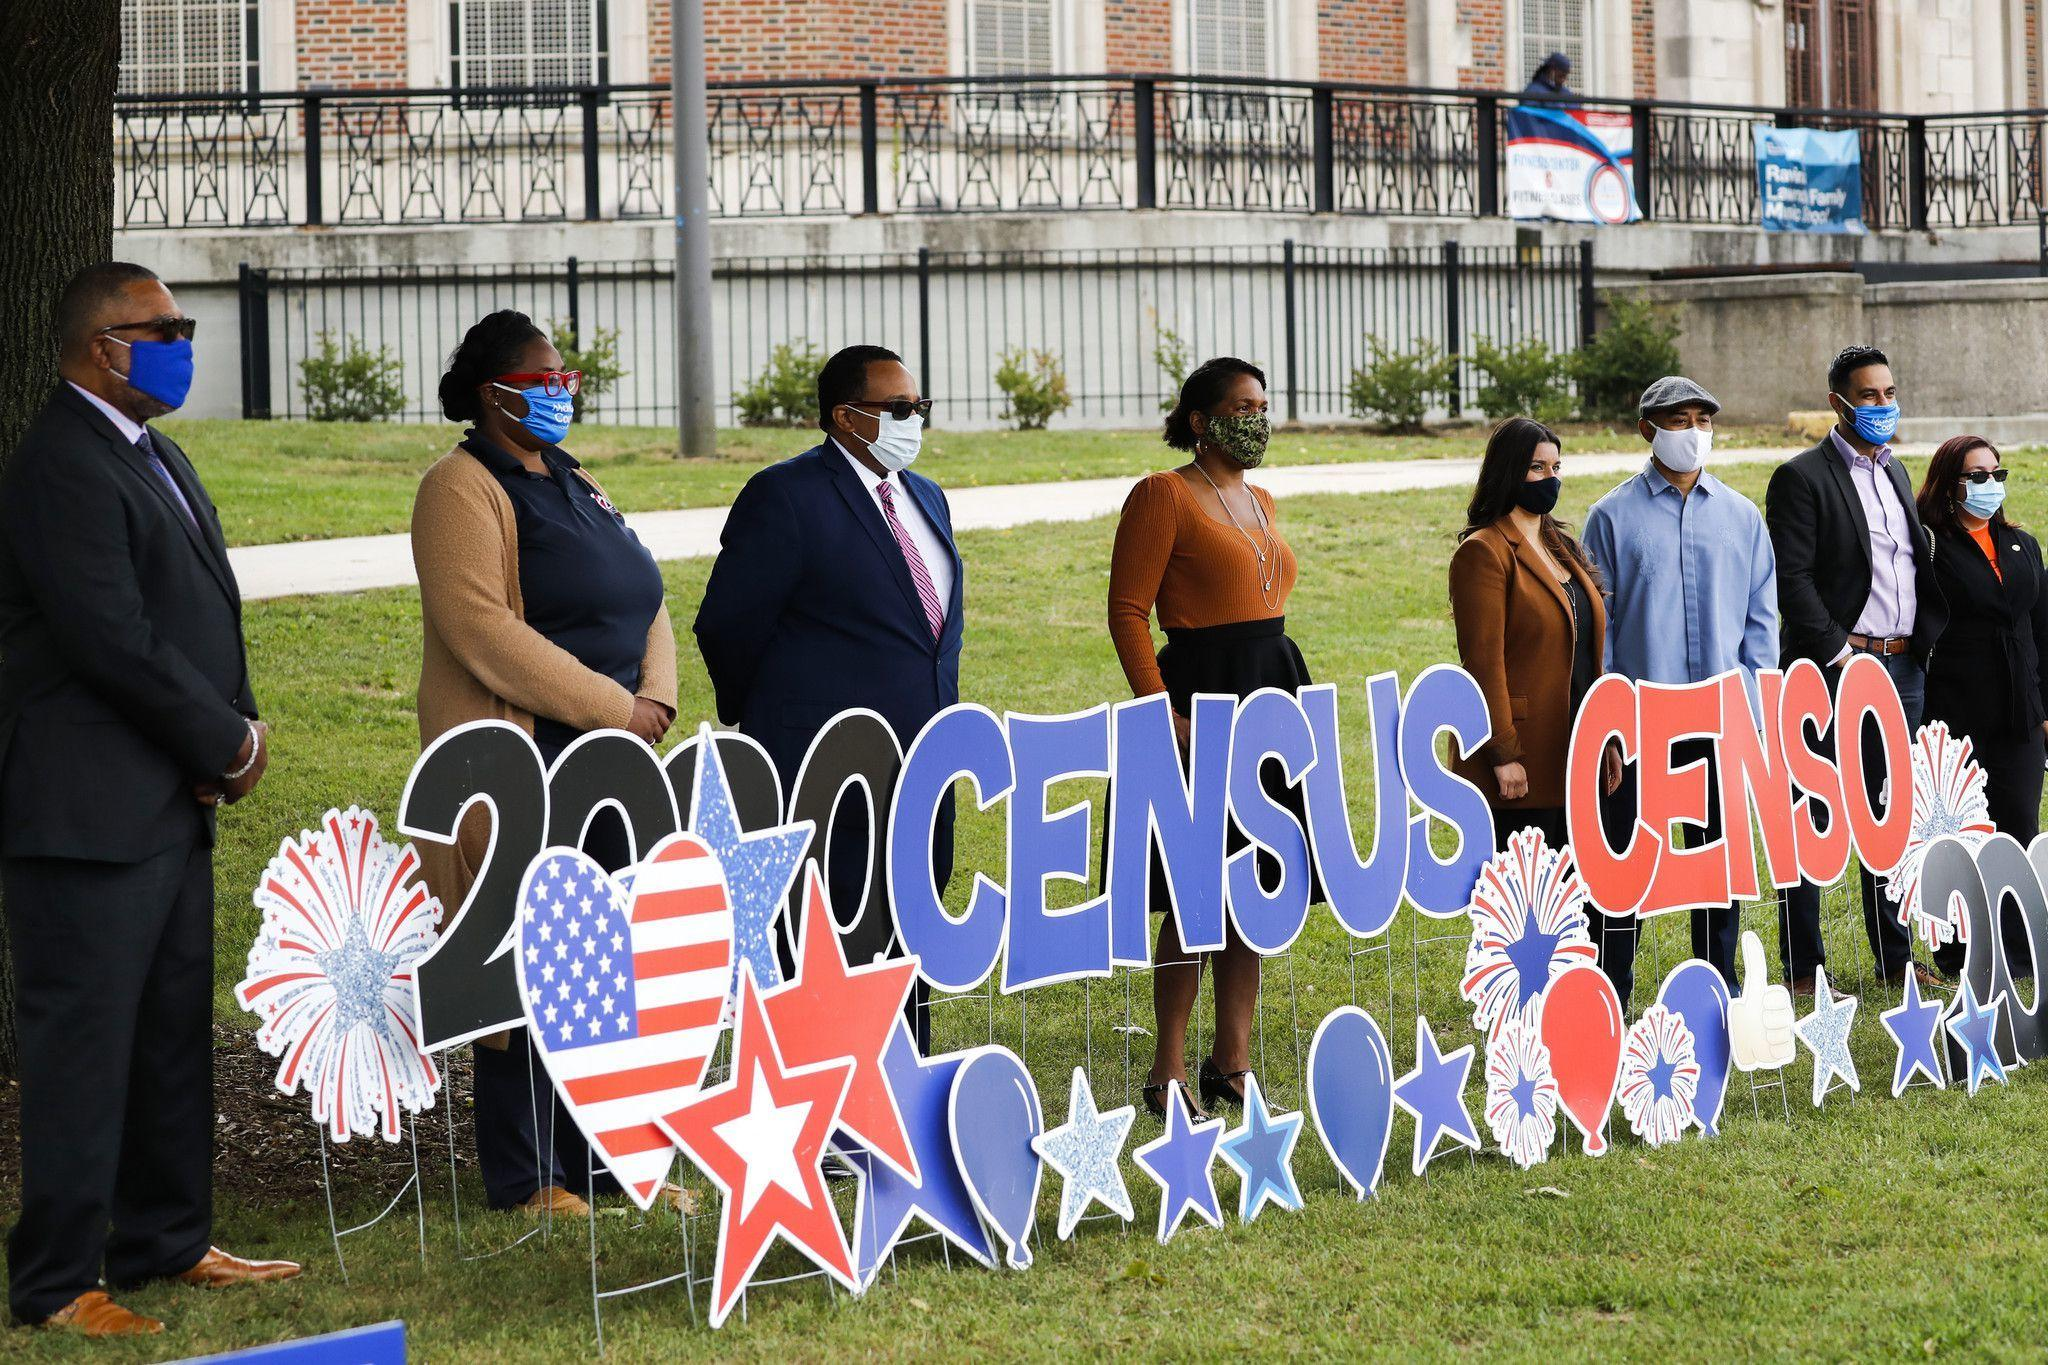 As shifting deadlines create confusion over census count, Chicago officials make last-minute plea in communities of color